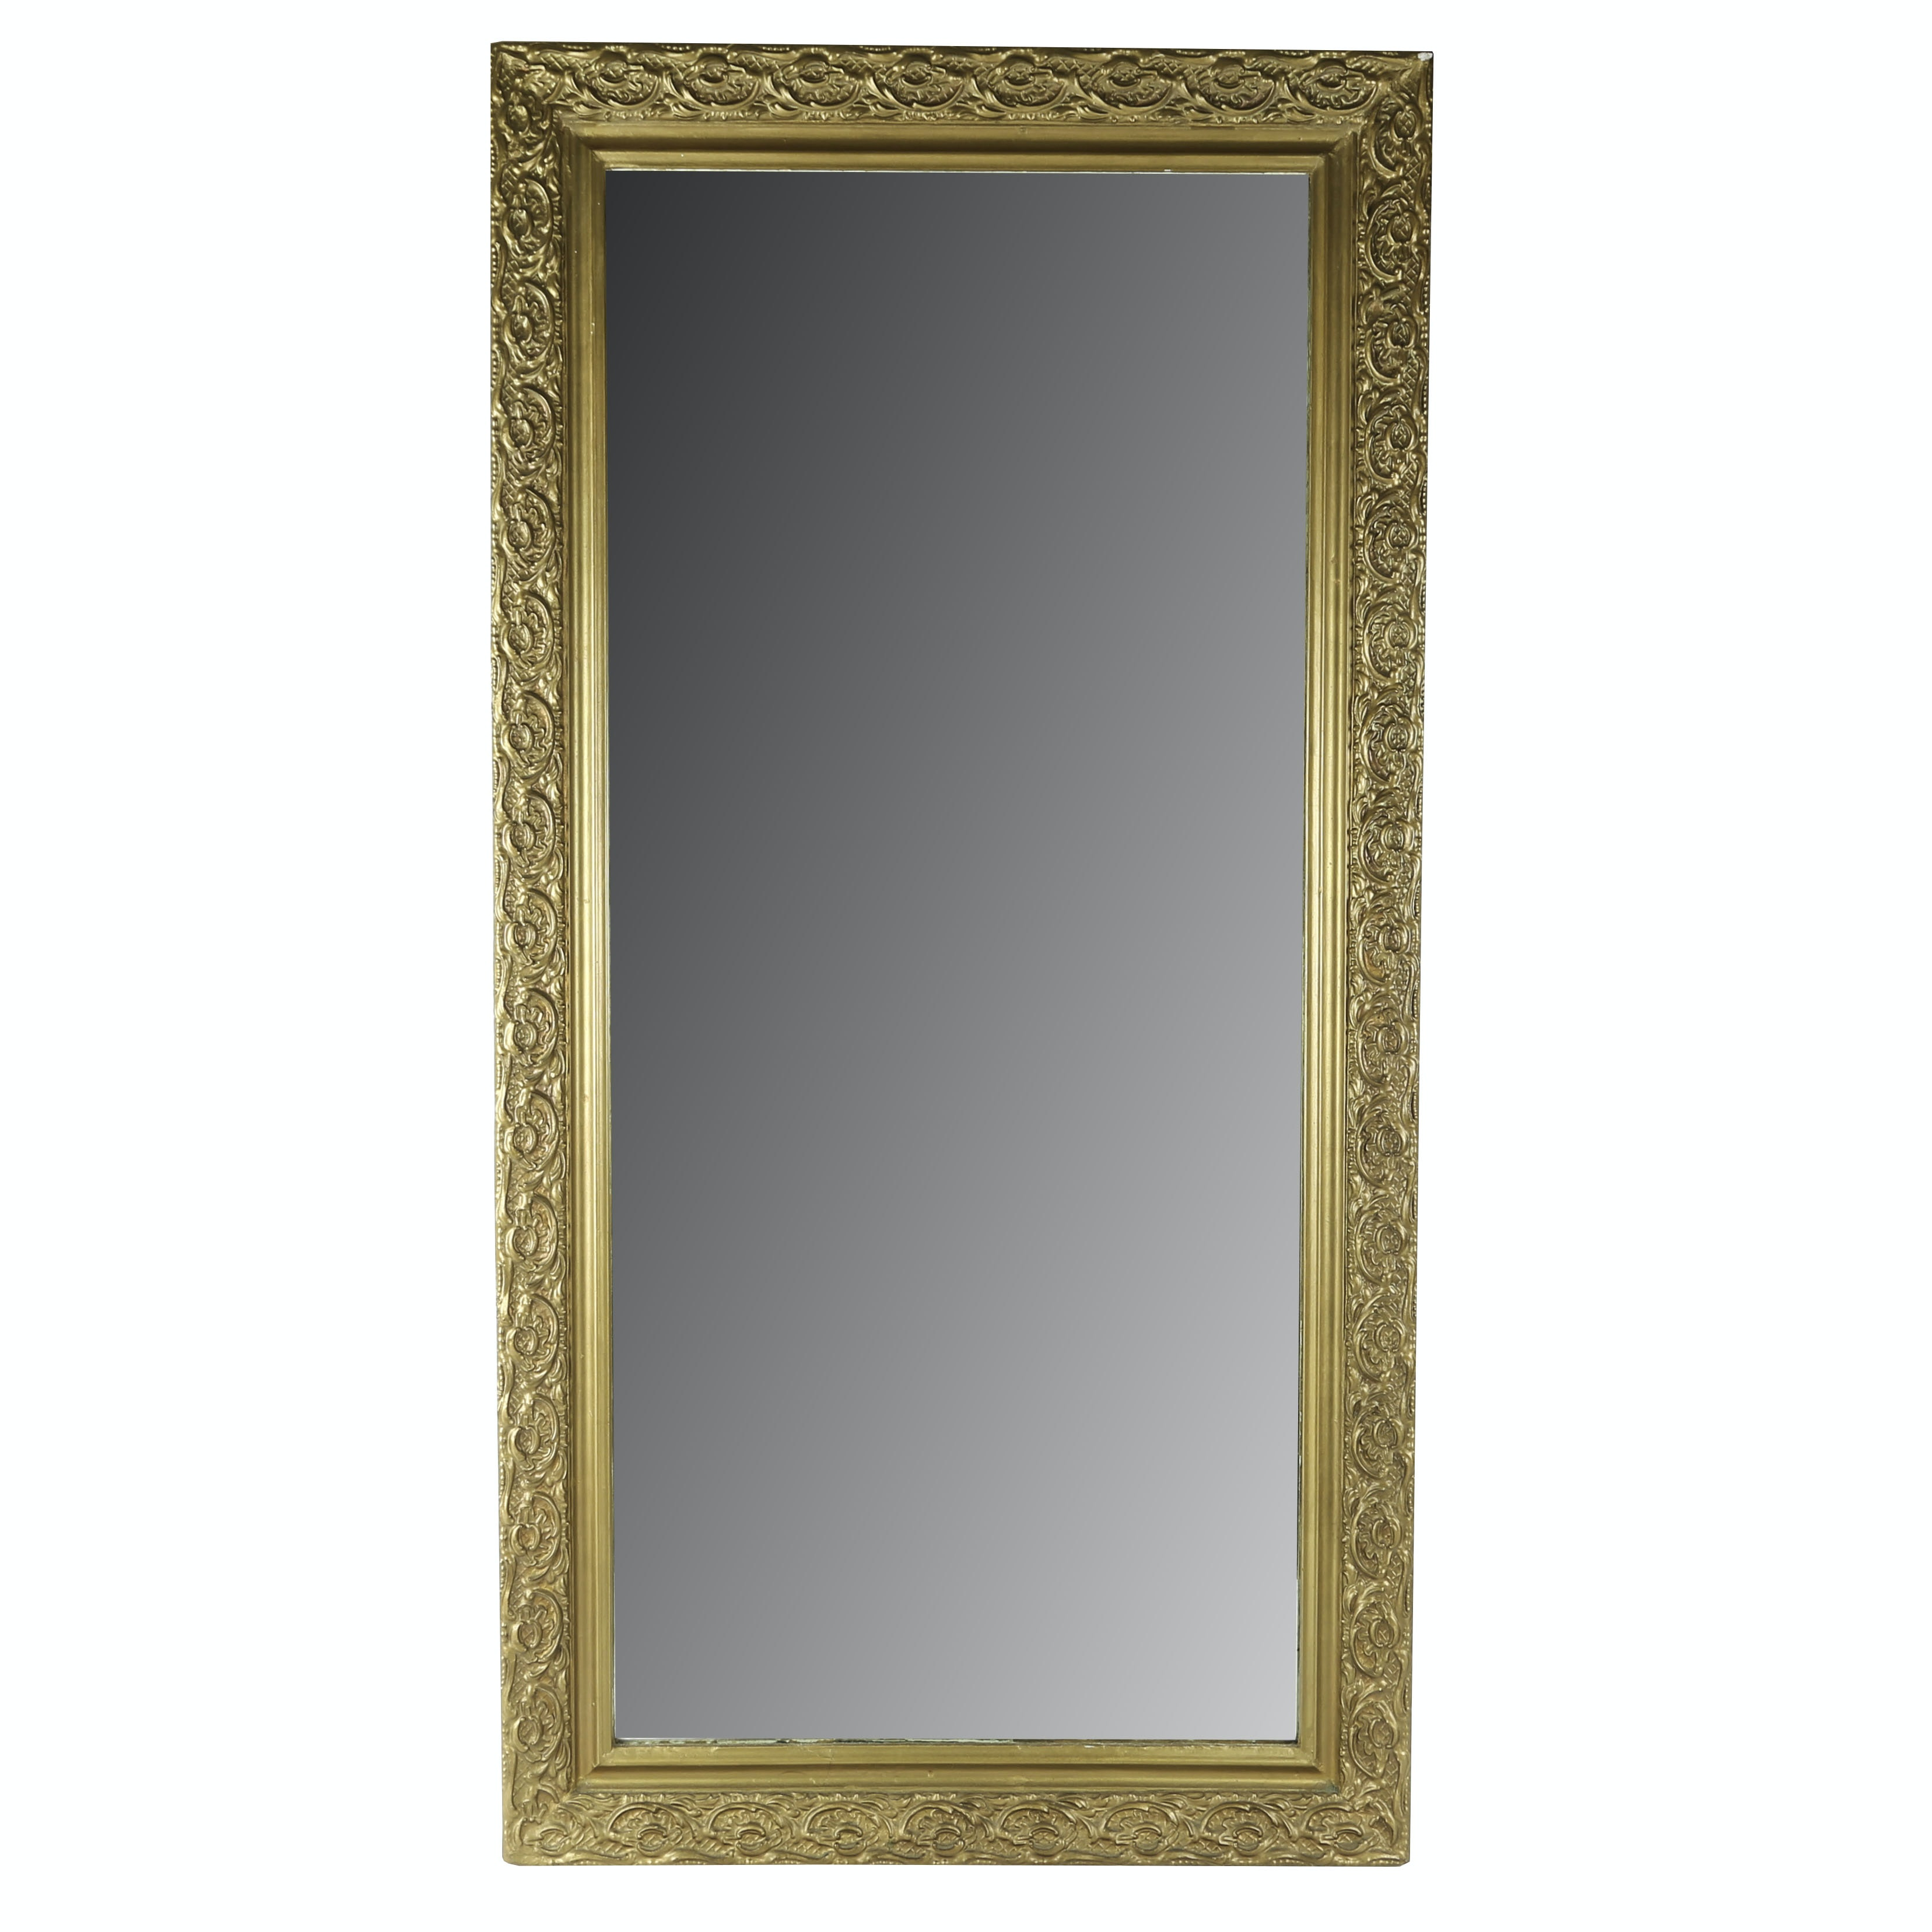 Antique Gold Painted Mirror